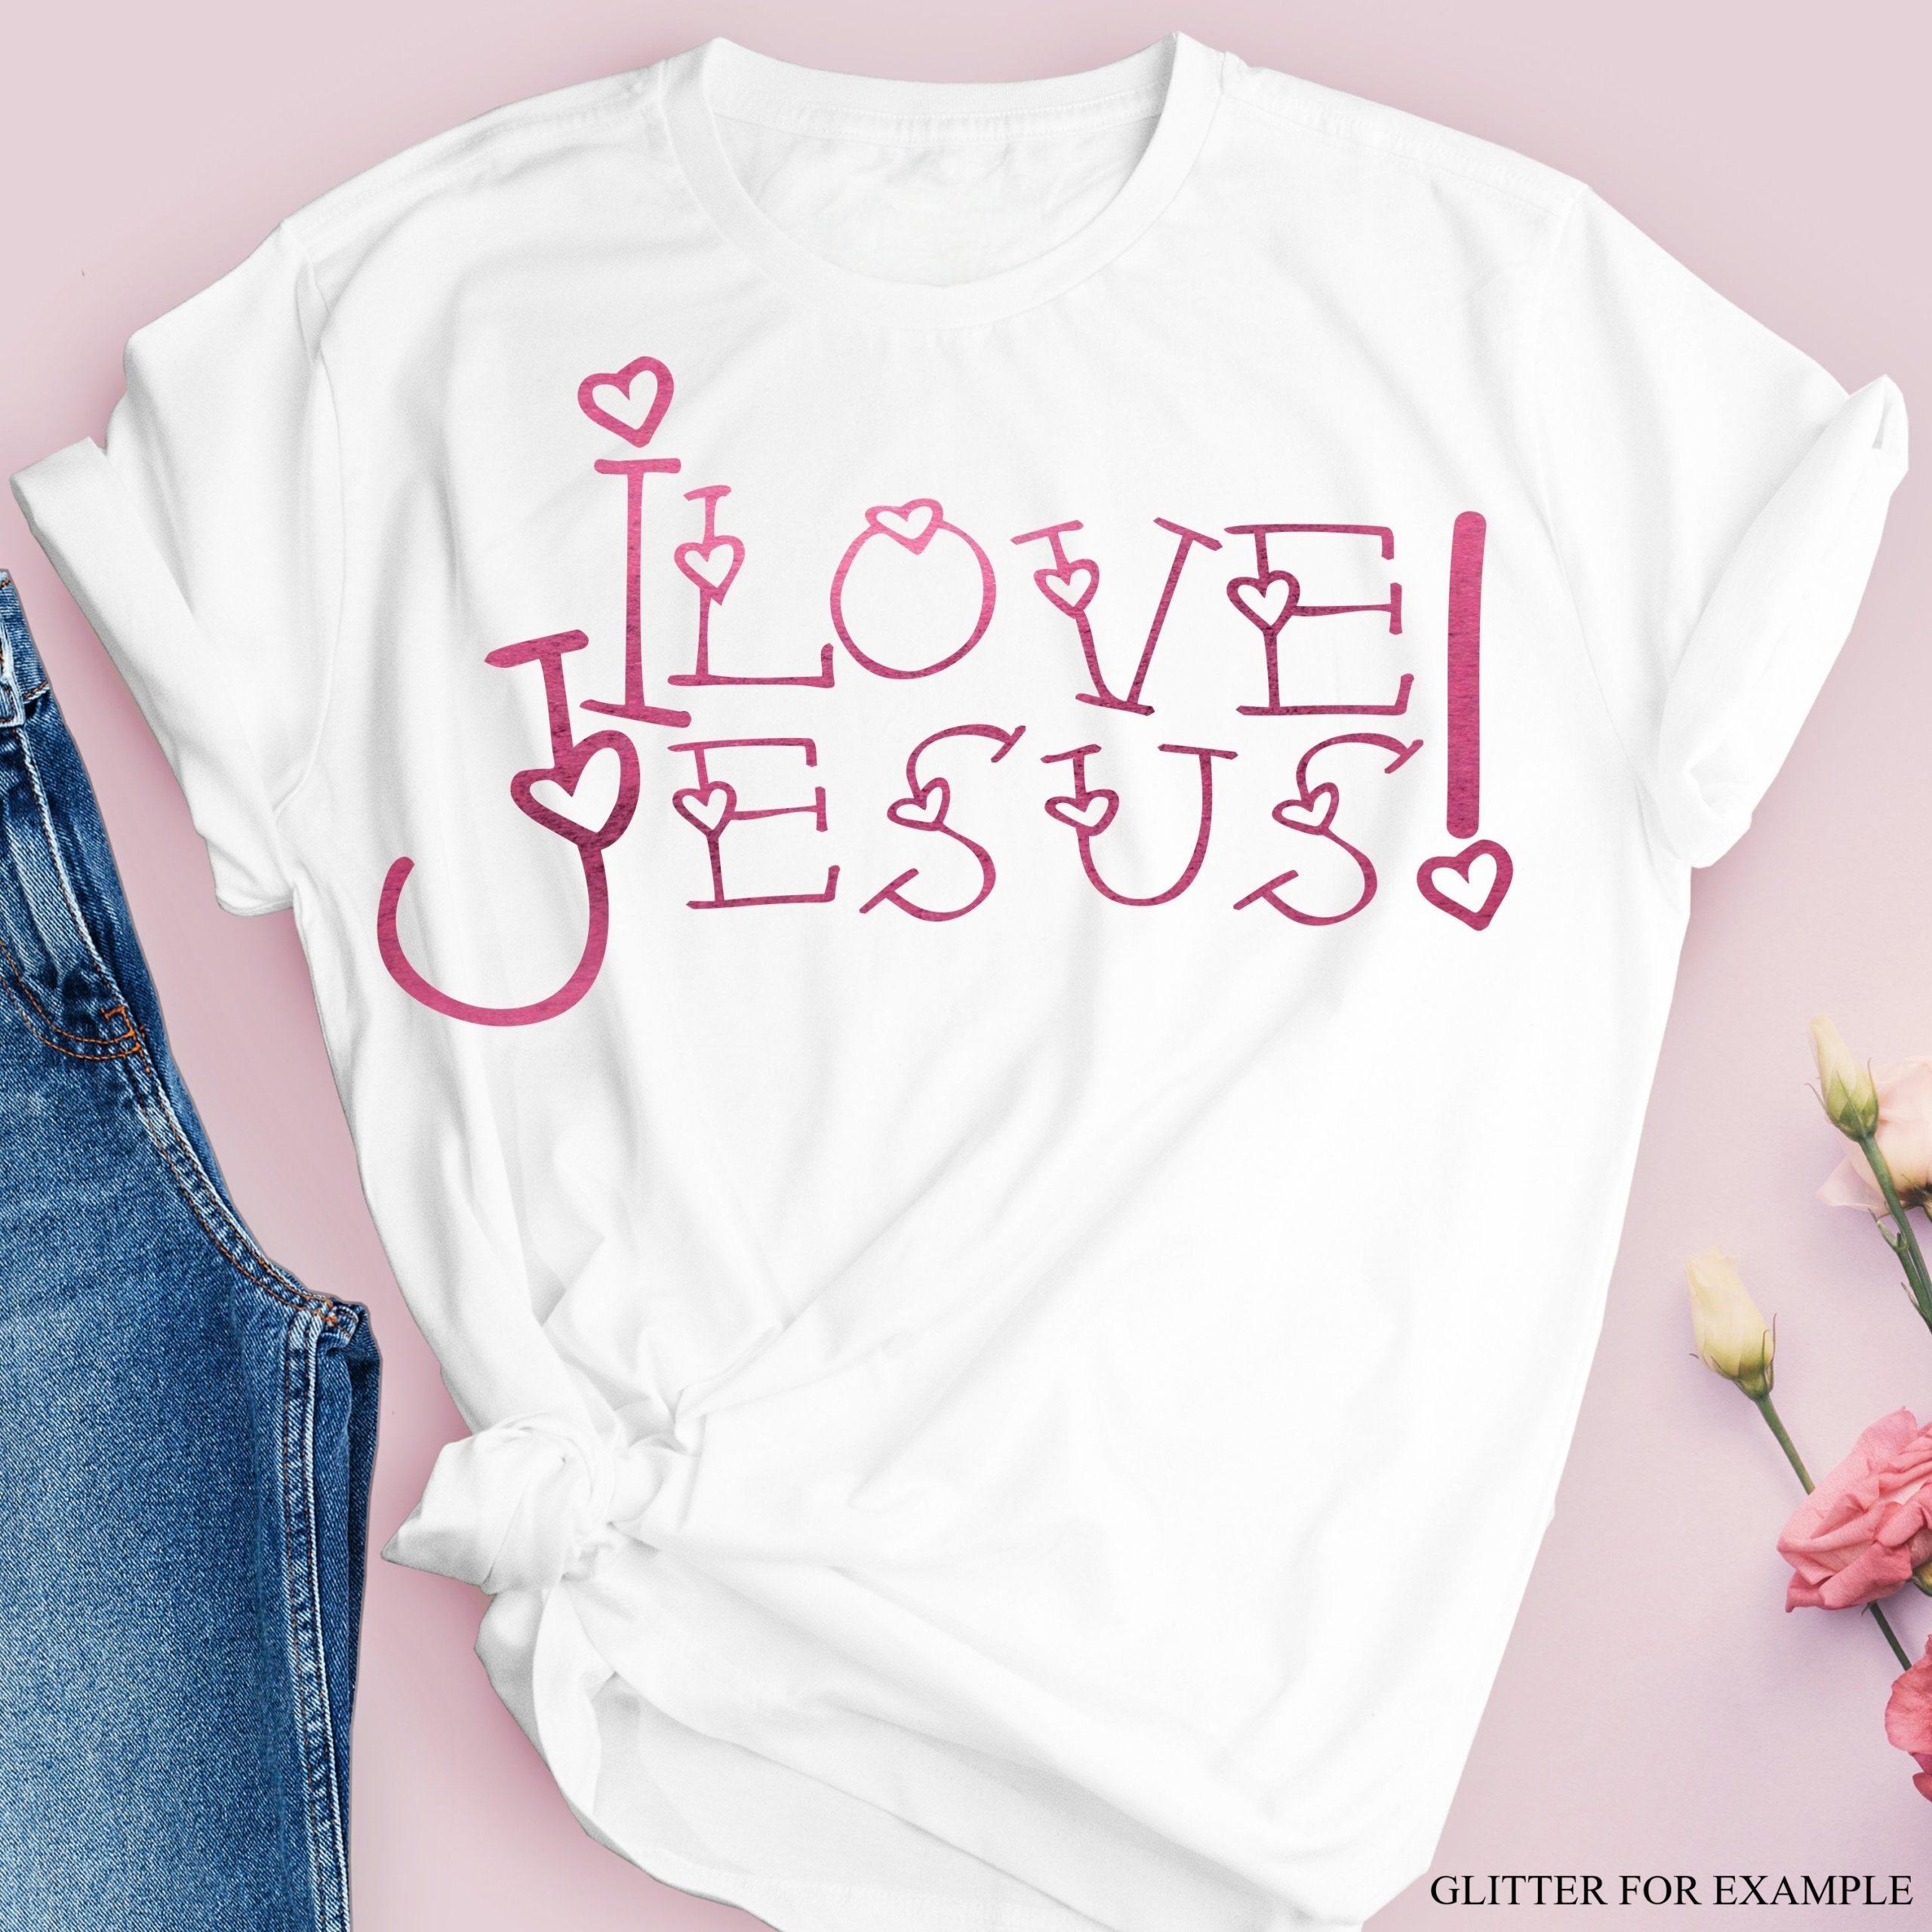 I-love-jesus-svgdxf-png-eps-files-for-cutting-machines-cameo-cricut-easter-easter-svg-designs-easter-cut-file-cricut-svg-60513d37